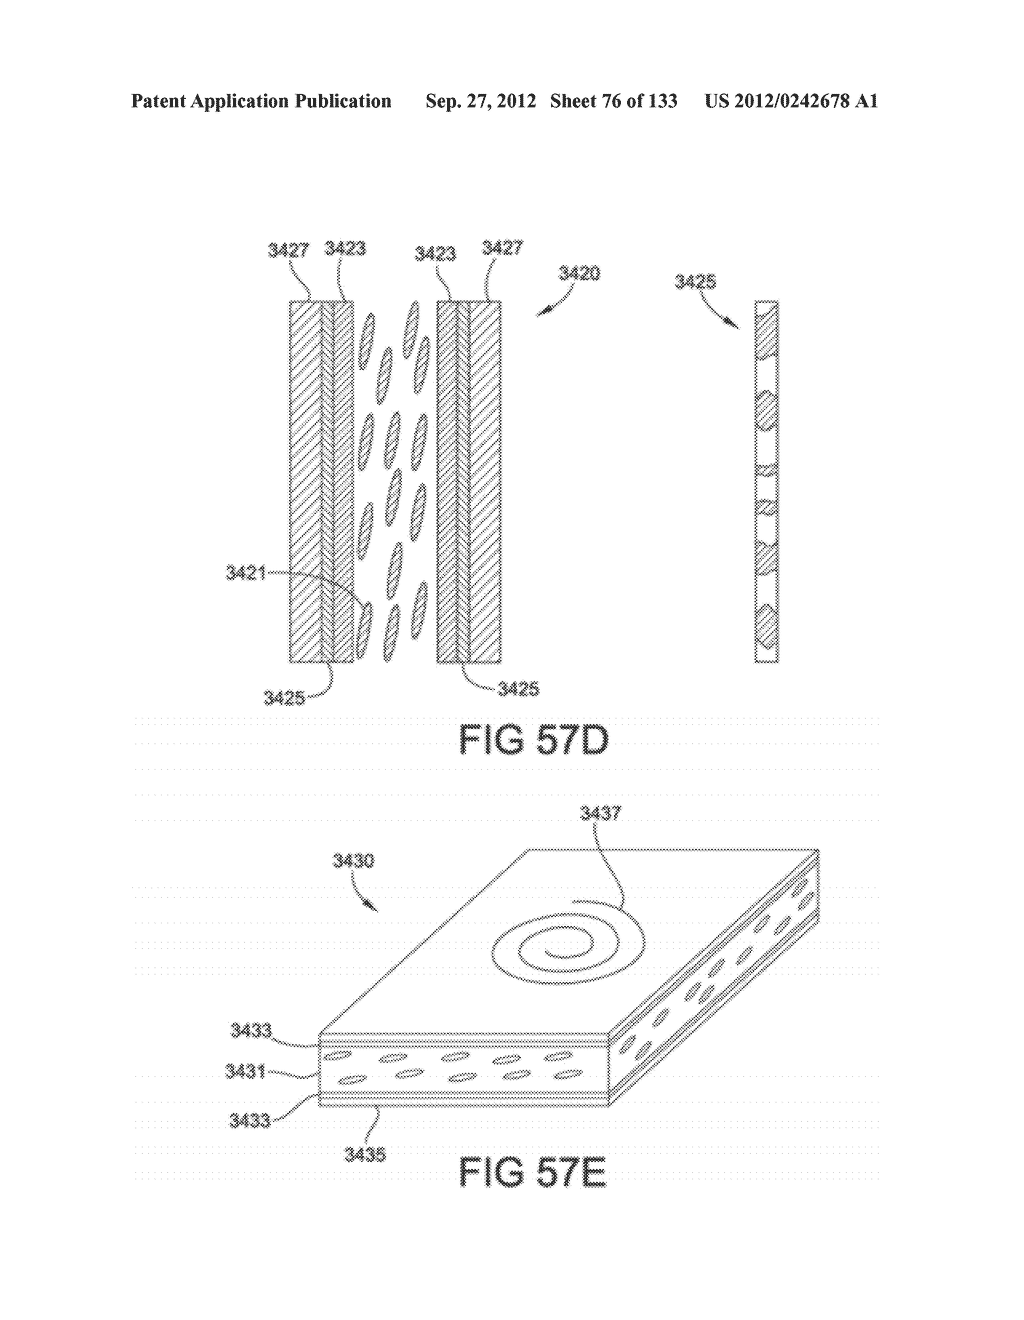 SEE-THROUGH NEAR-EYE DISPLAY GLASSES INCLUDING AN AUTO-BRIGHTNESS CONTROL     FOR THE DISPLAY BRIGHTNESS BASED ON THE BRIGHTNESS IN THE ENVIRONMENT - diagram, schematic, and image 77